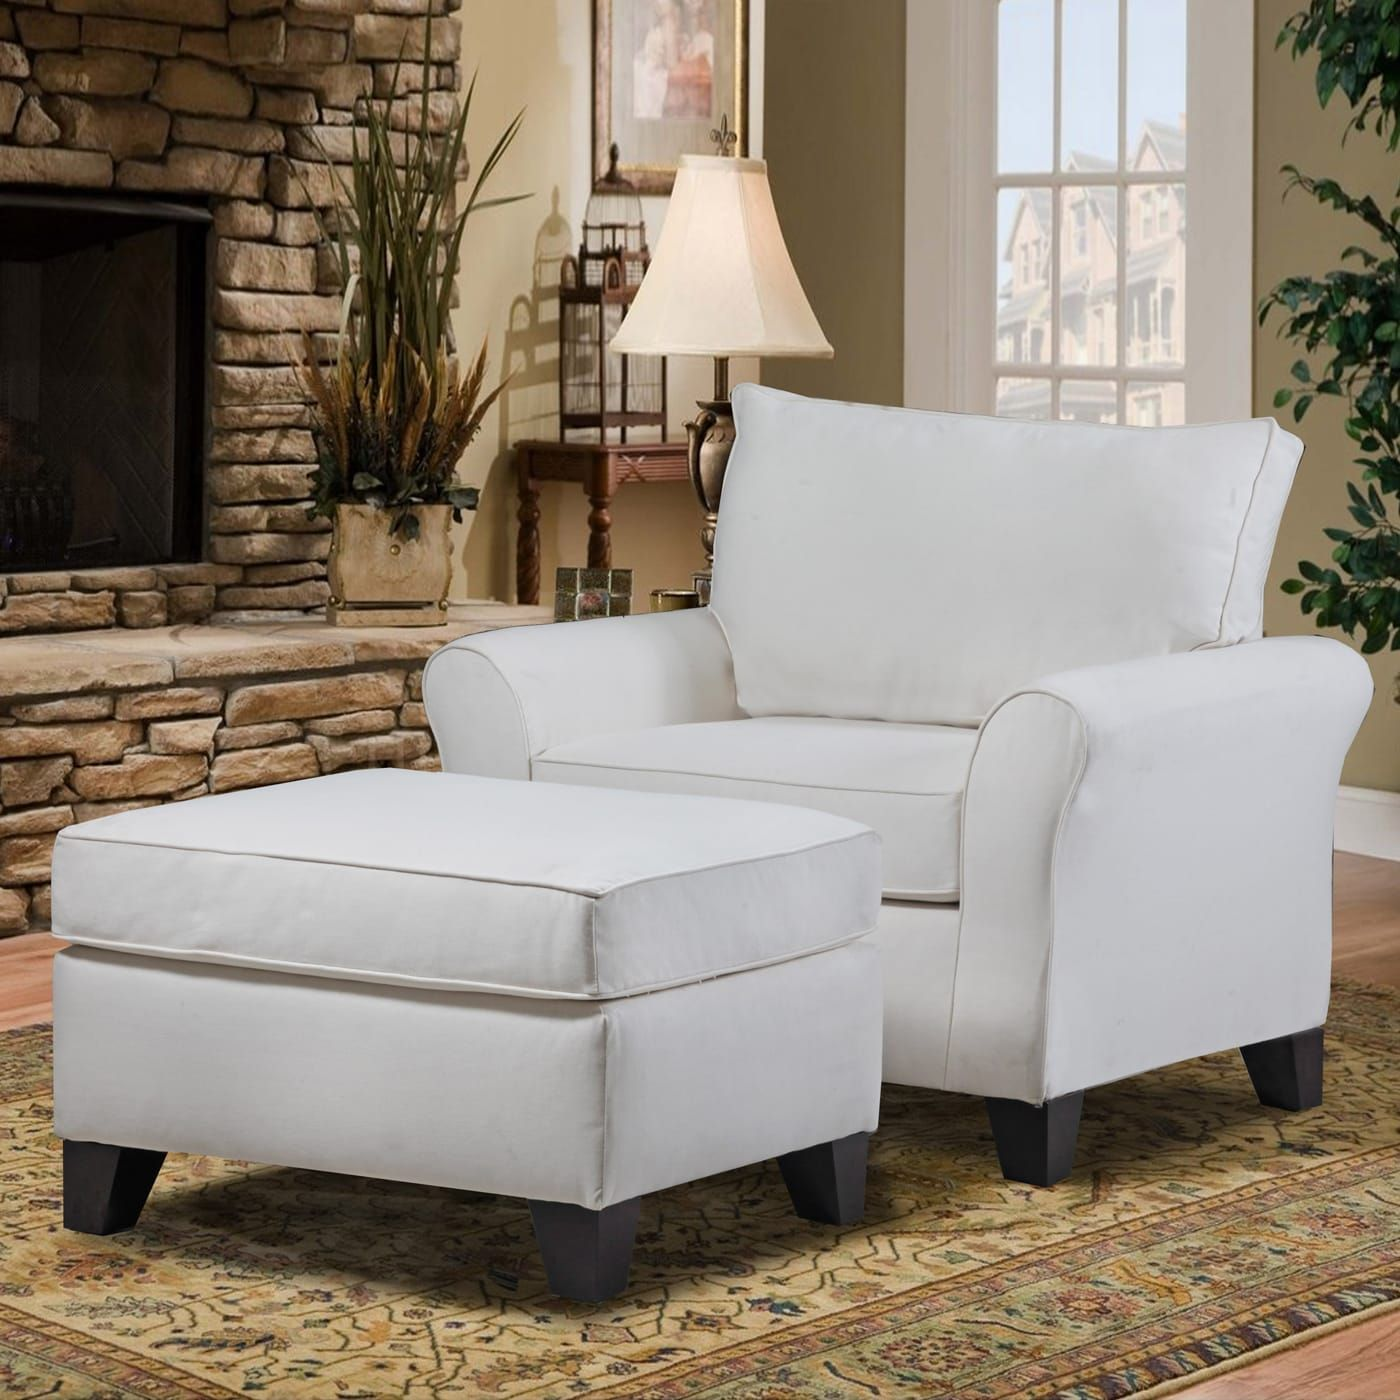 Shop Carolina Accents CA5215 CA5202 Belle Meade Arm Chair and